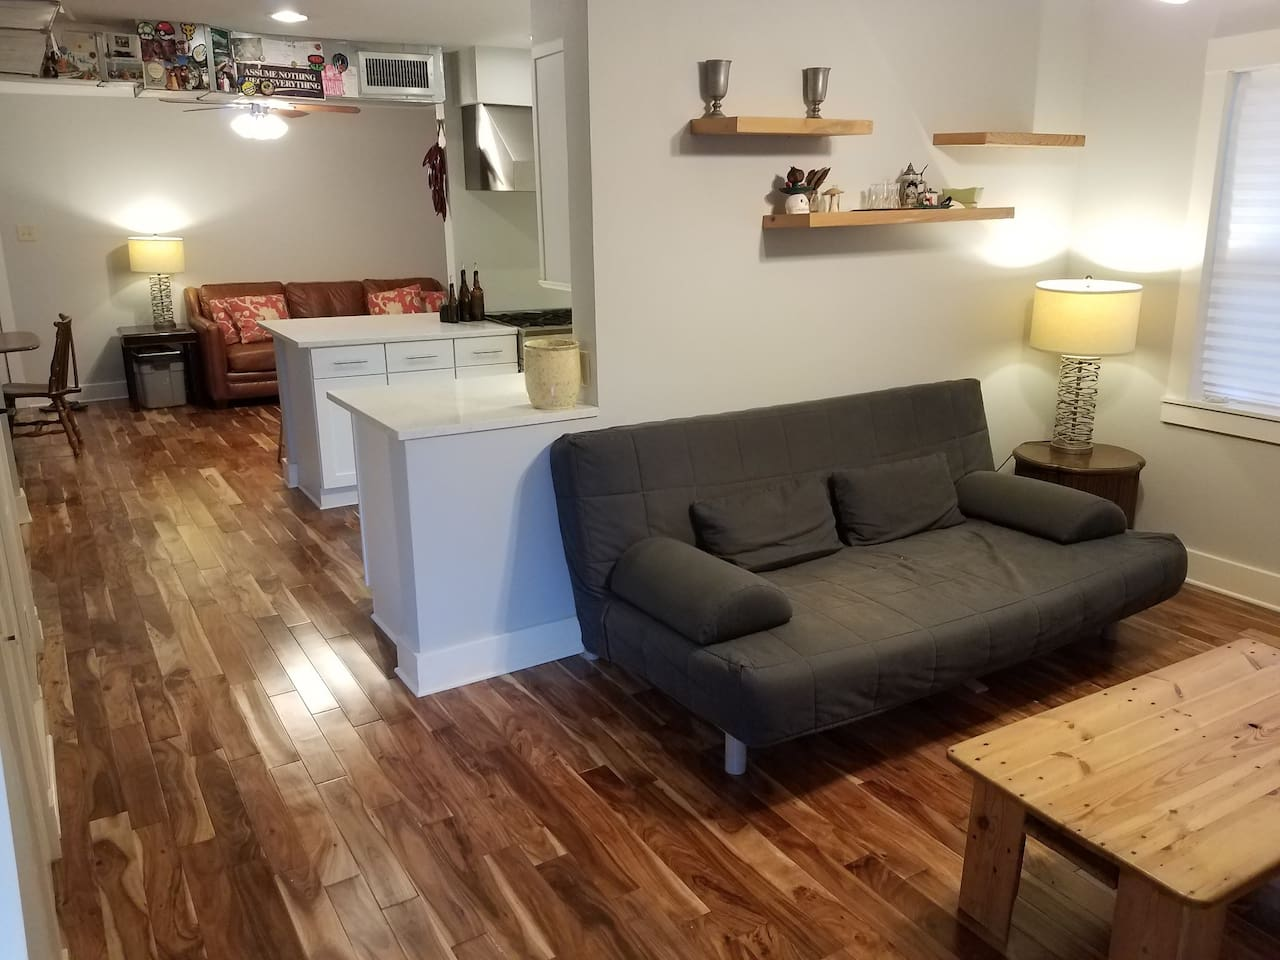 shared living space and kitchen